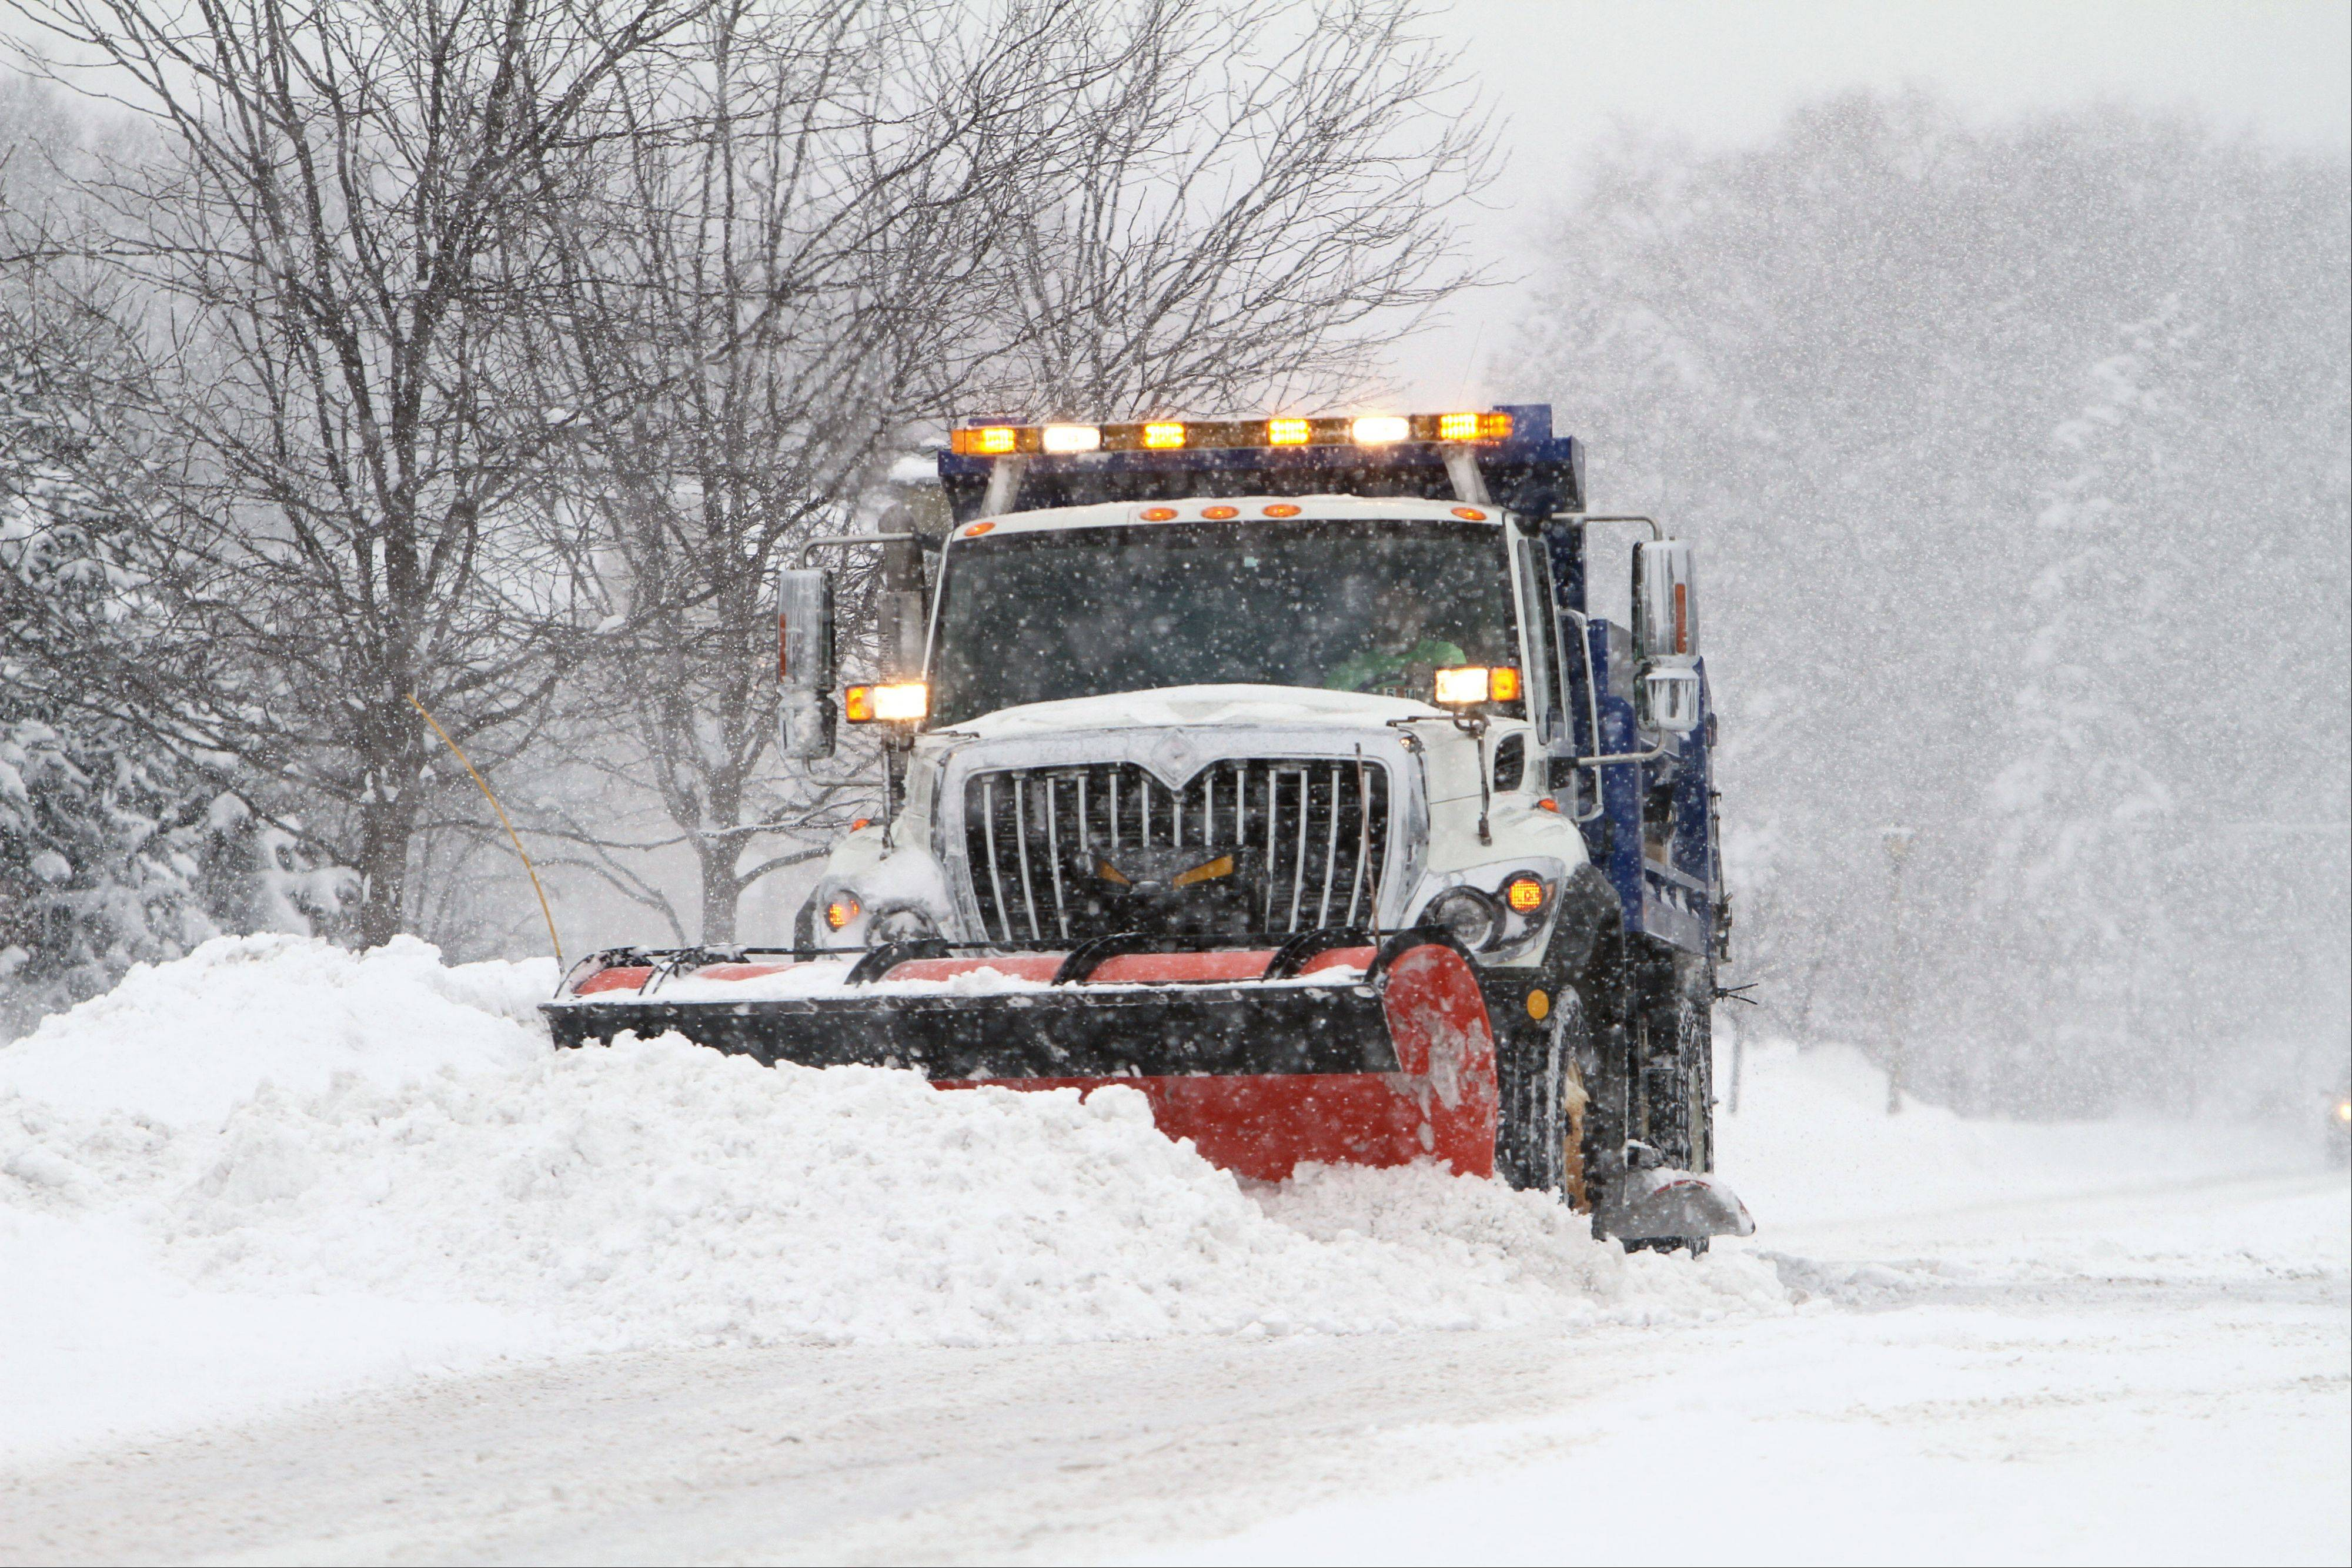 Steve Lundy/slundy@dailyherald.com A snowplow makes its way down Garfield Avenue in Libertyville.